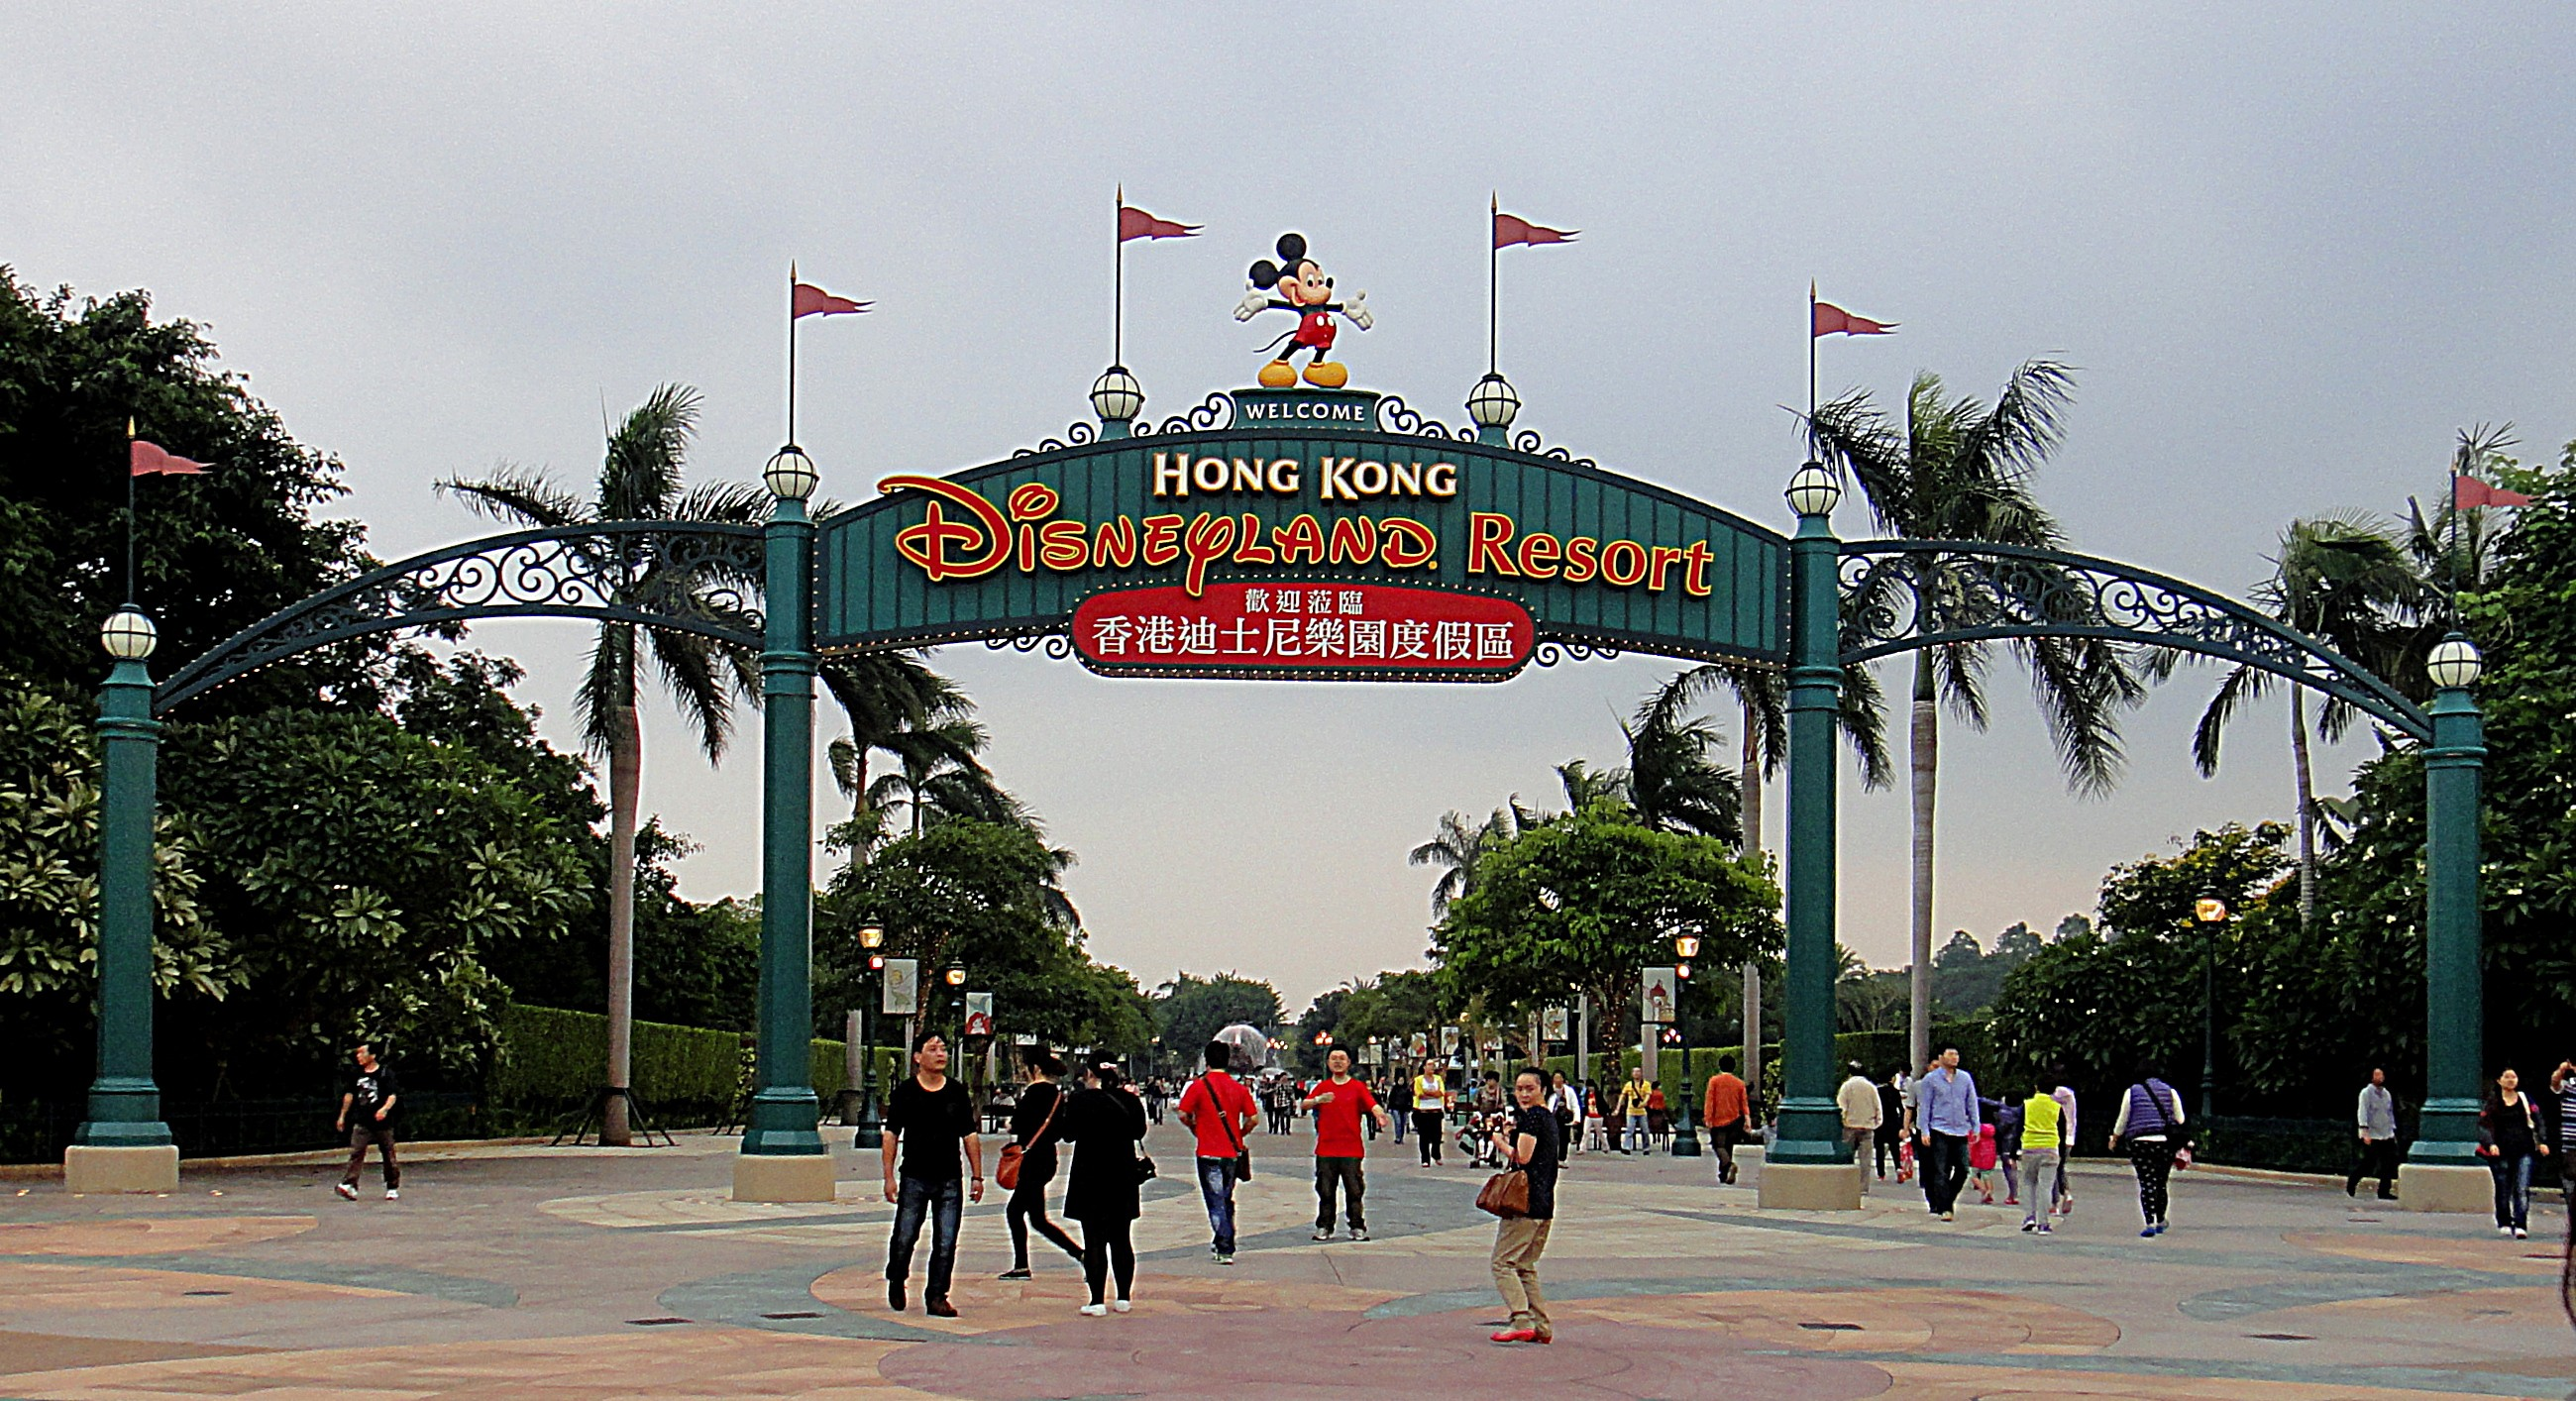 「Hong-kong Disney Resort」の画像検索結果